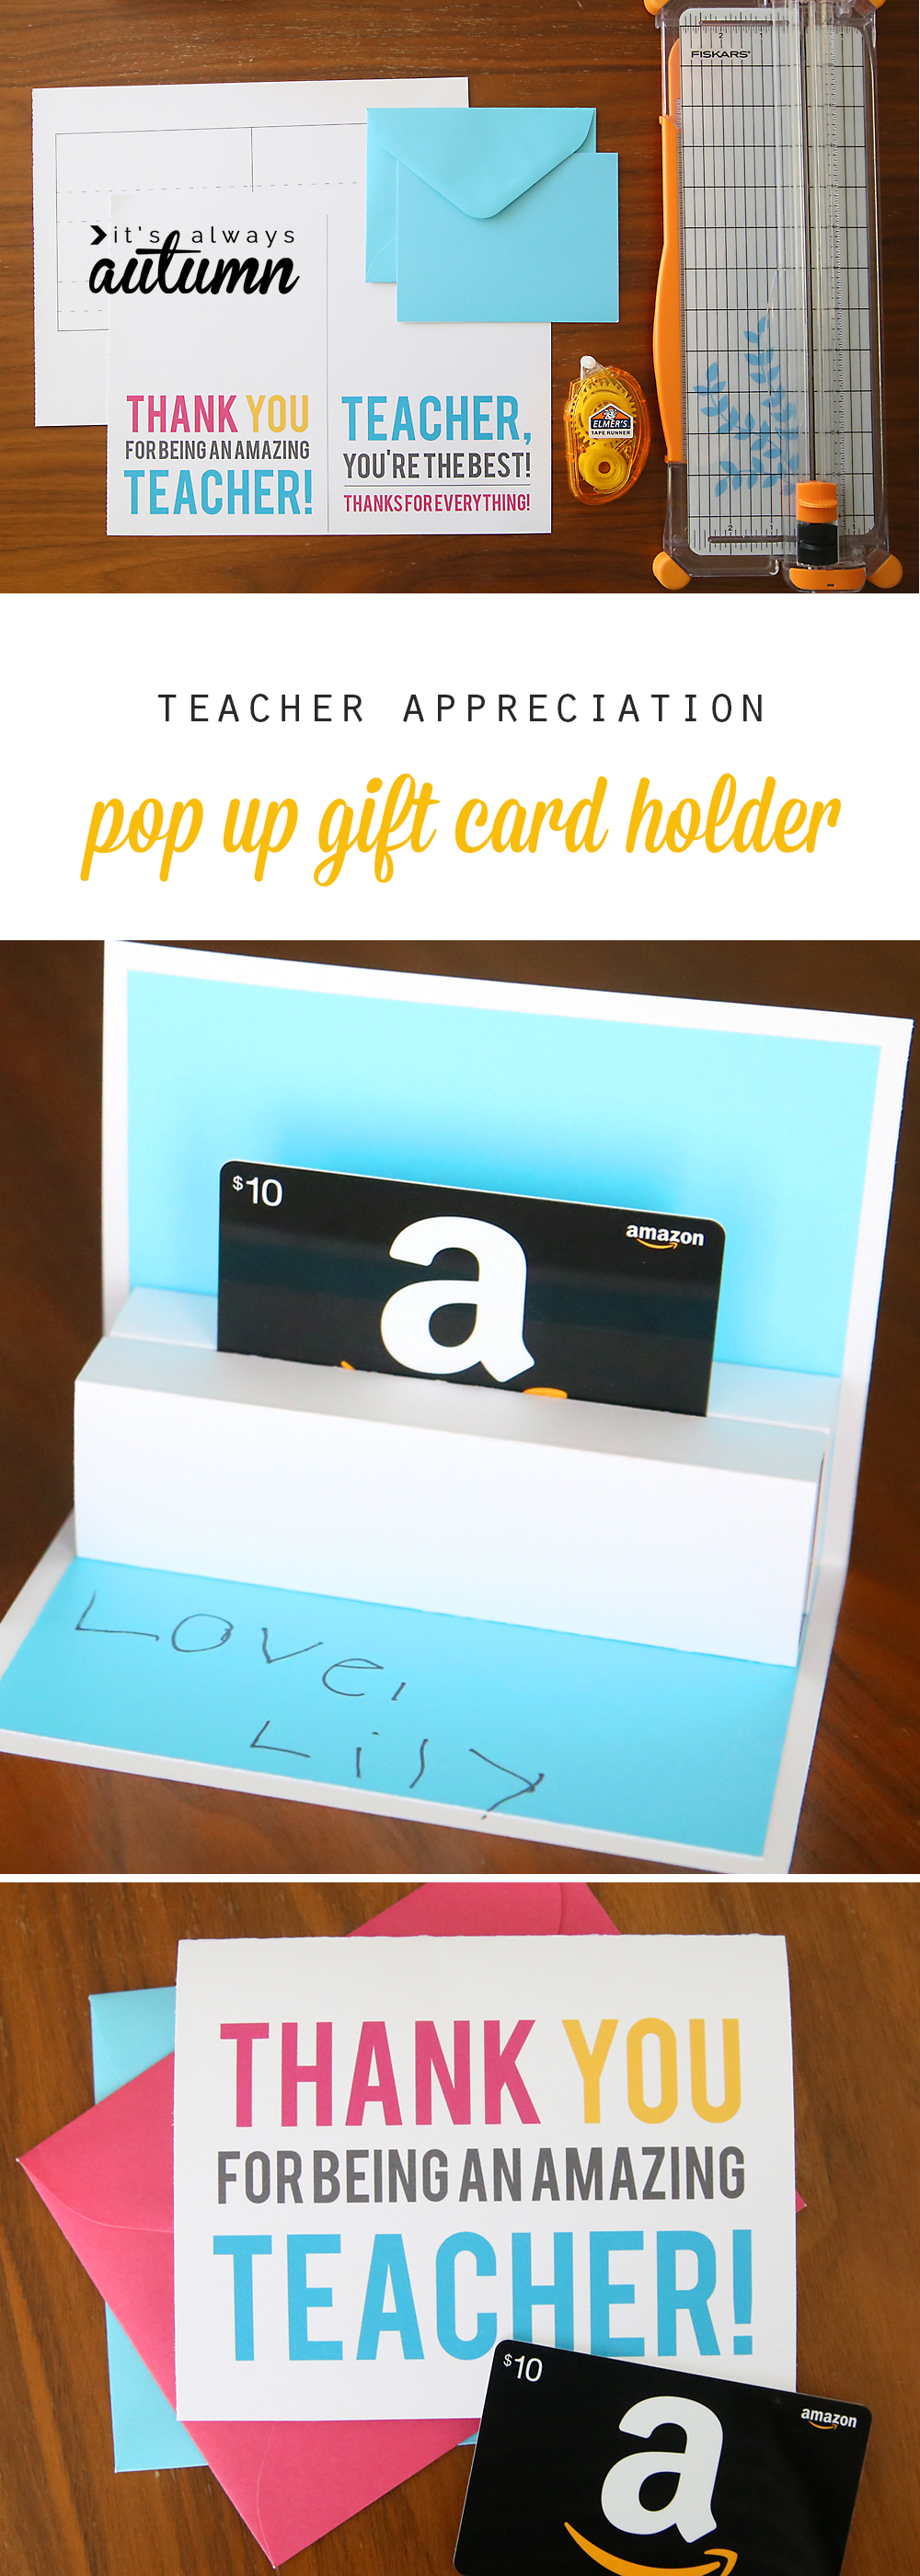 image regarding Free Printable Gift Card Holder Templates titled Do it yourself trainer appreciation pop up present card holder - Its